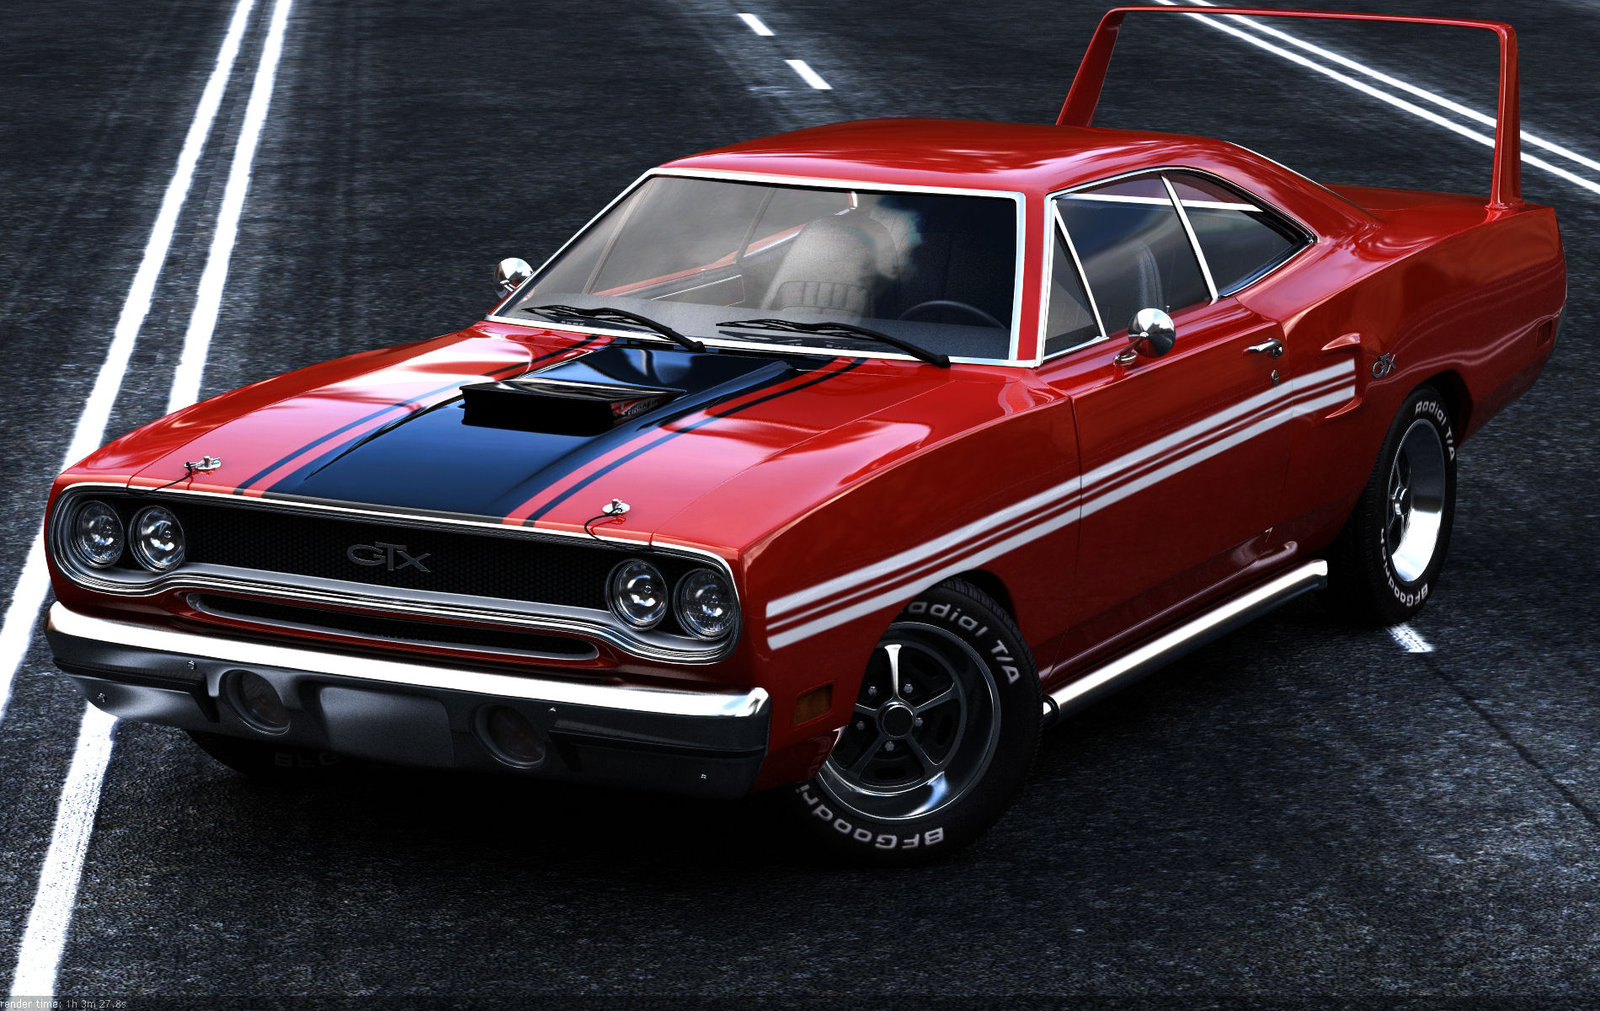 Top American Muscle Cars of the 60s and 70s